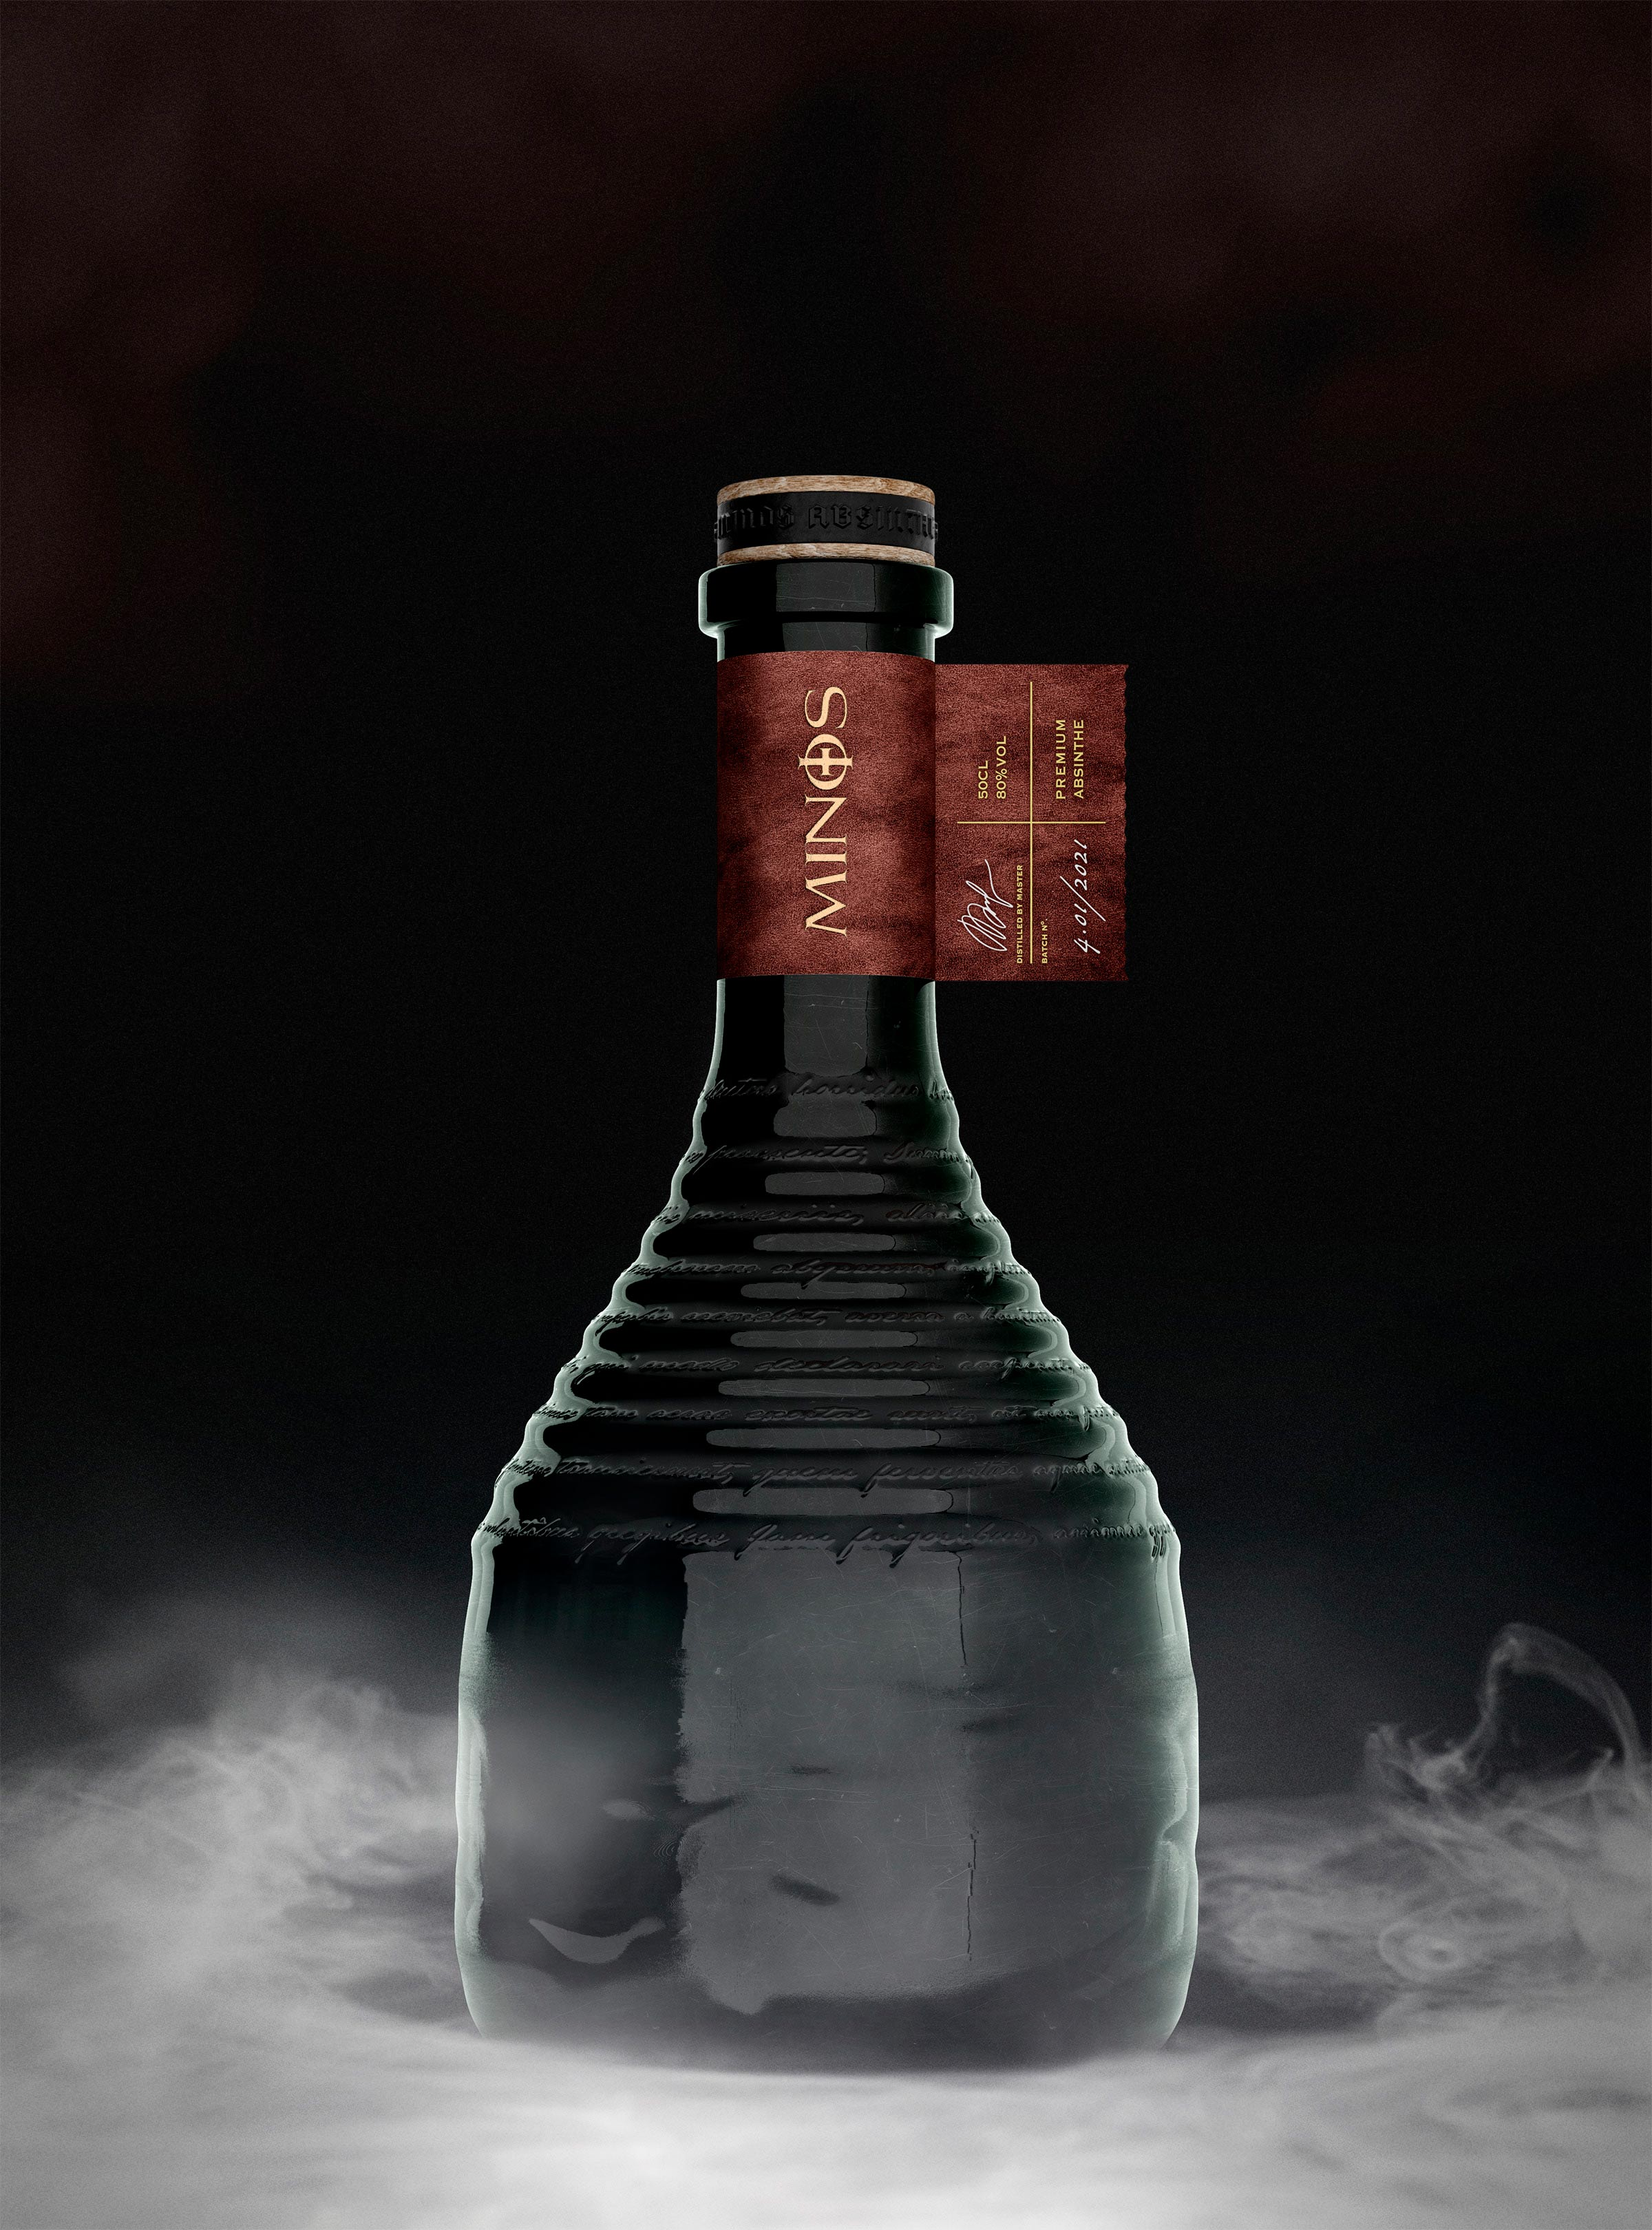 C.Carbon Signed the Bottle and Packaging Design for a Brand New Premium Absinthe